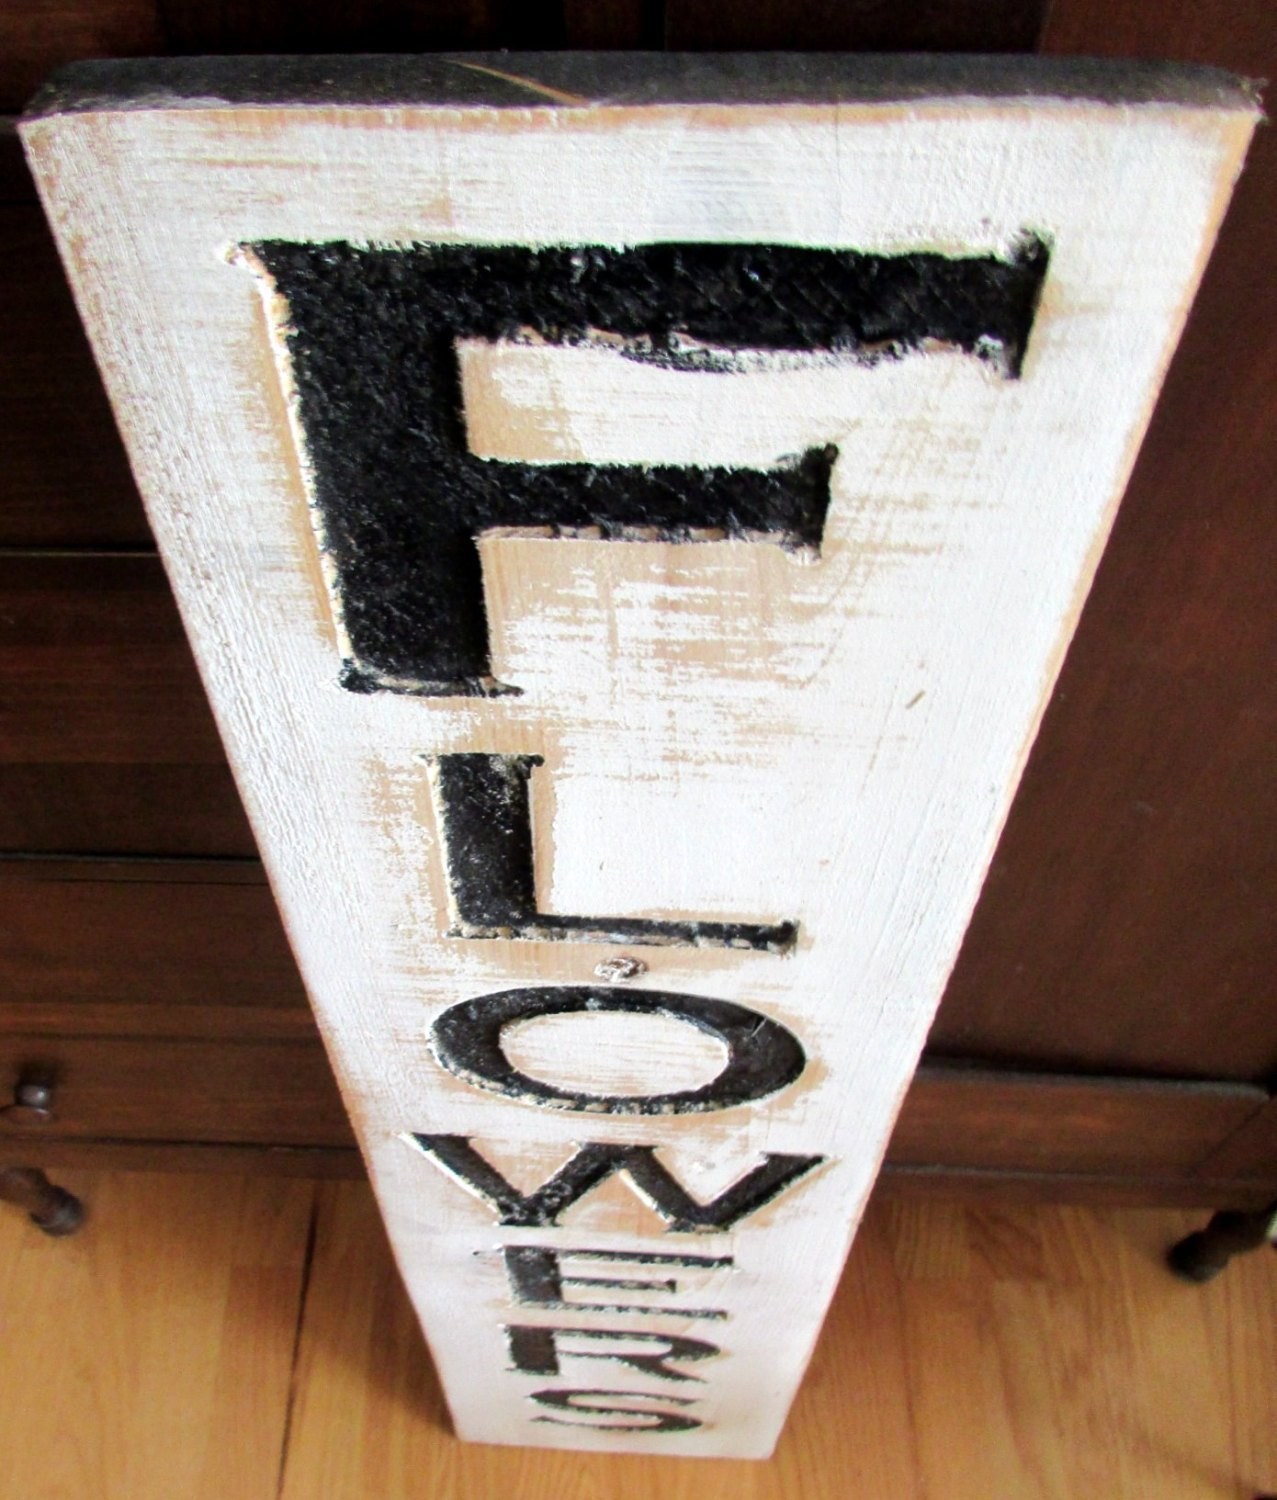 Carved in a Cypress Board Rustic Distressed Florist Shop Advertisement Farmhouse Style Nursery Wooden Wood Flowers Sign 41 Vertical